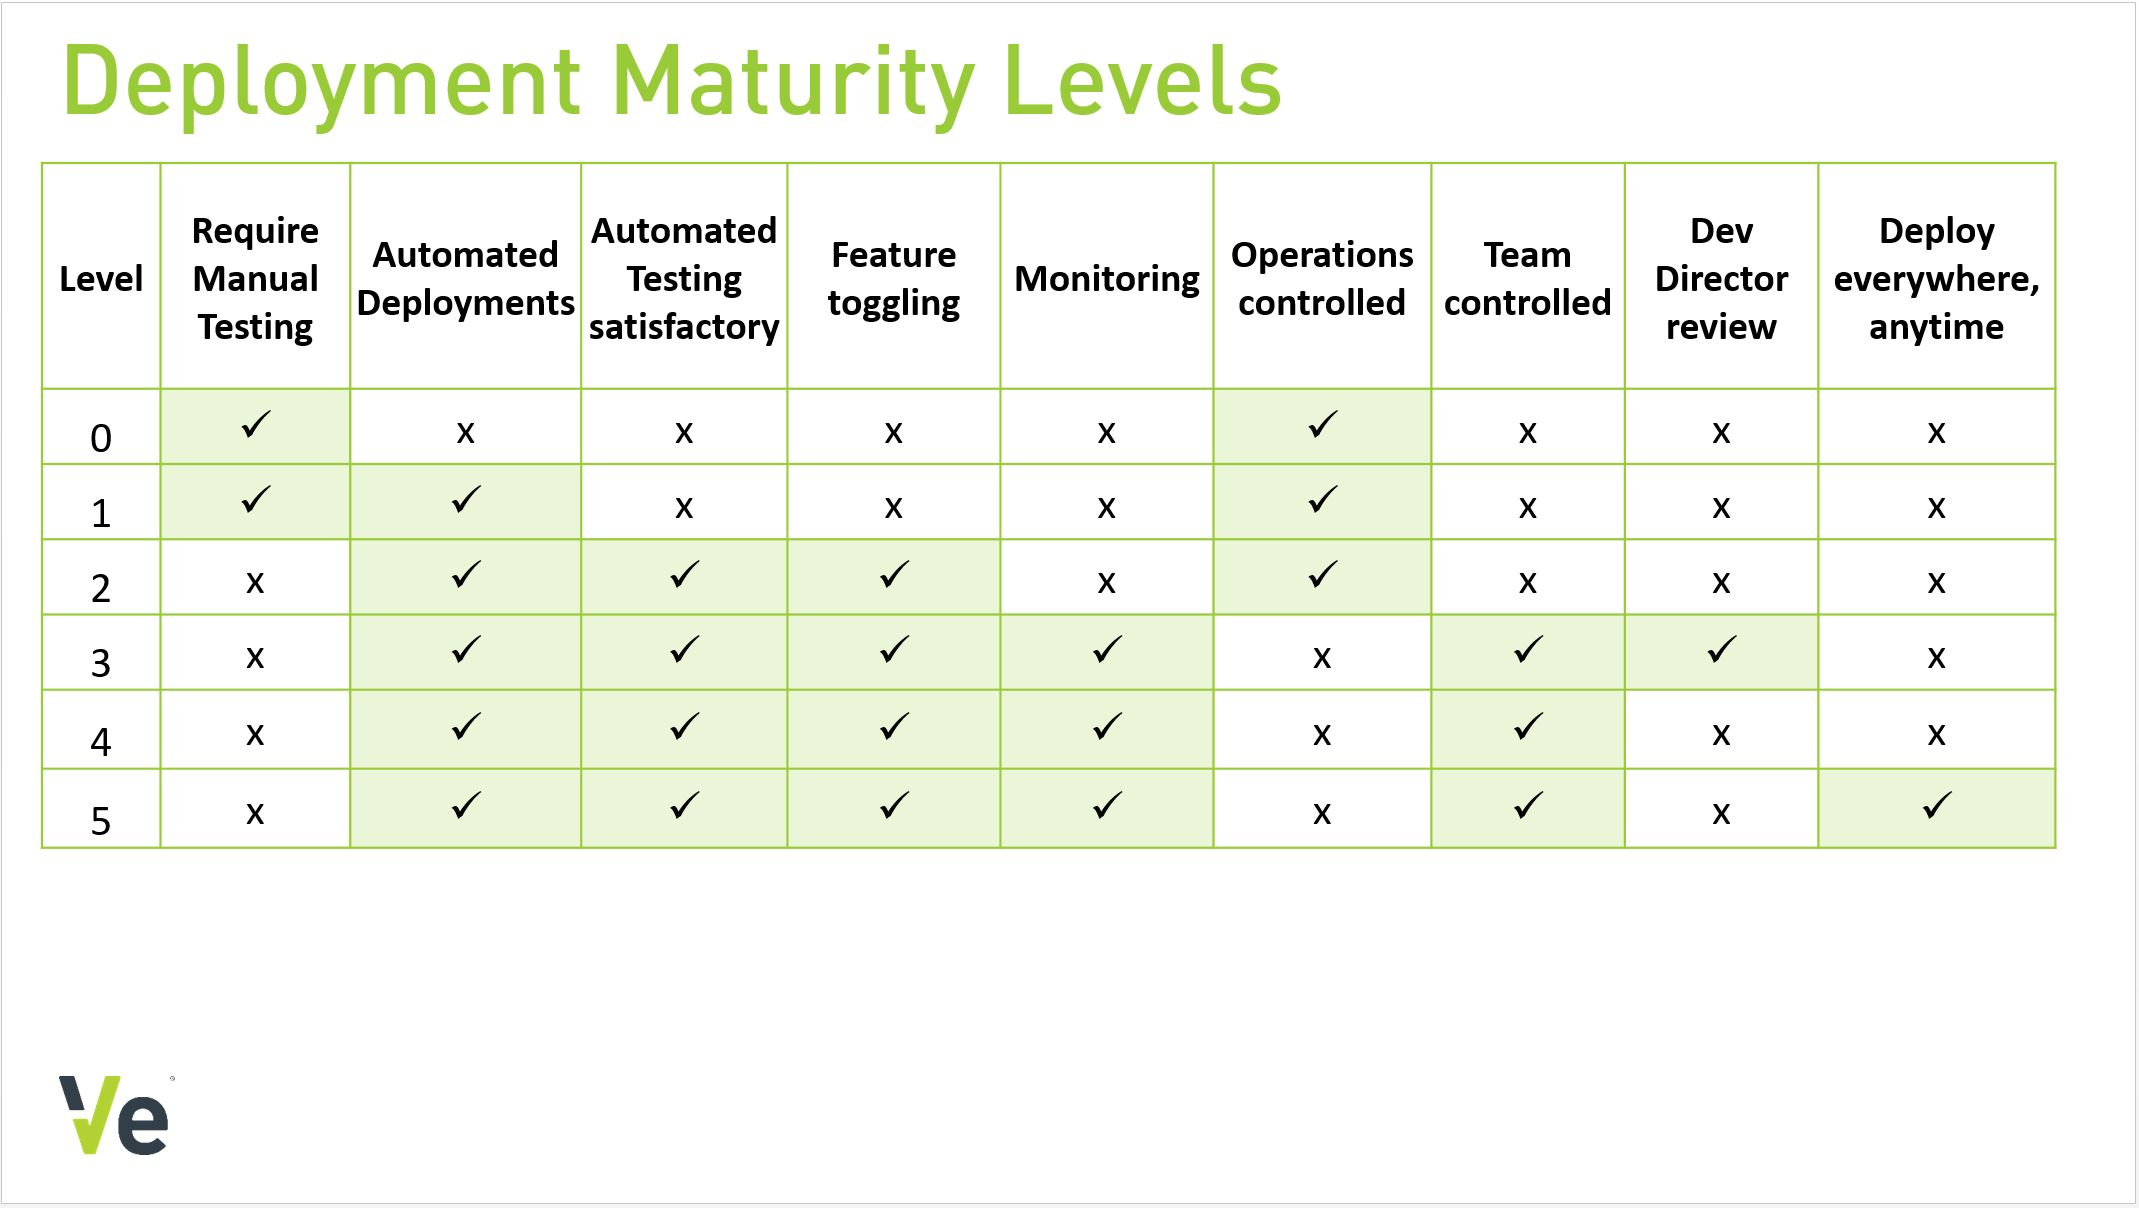 Deployment Maturity Levels